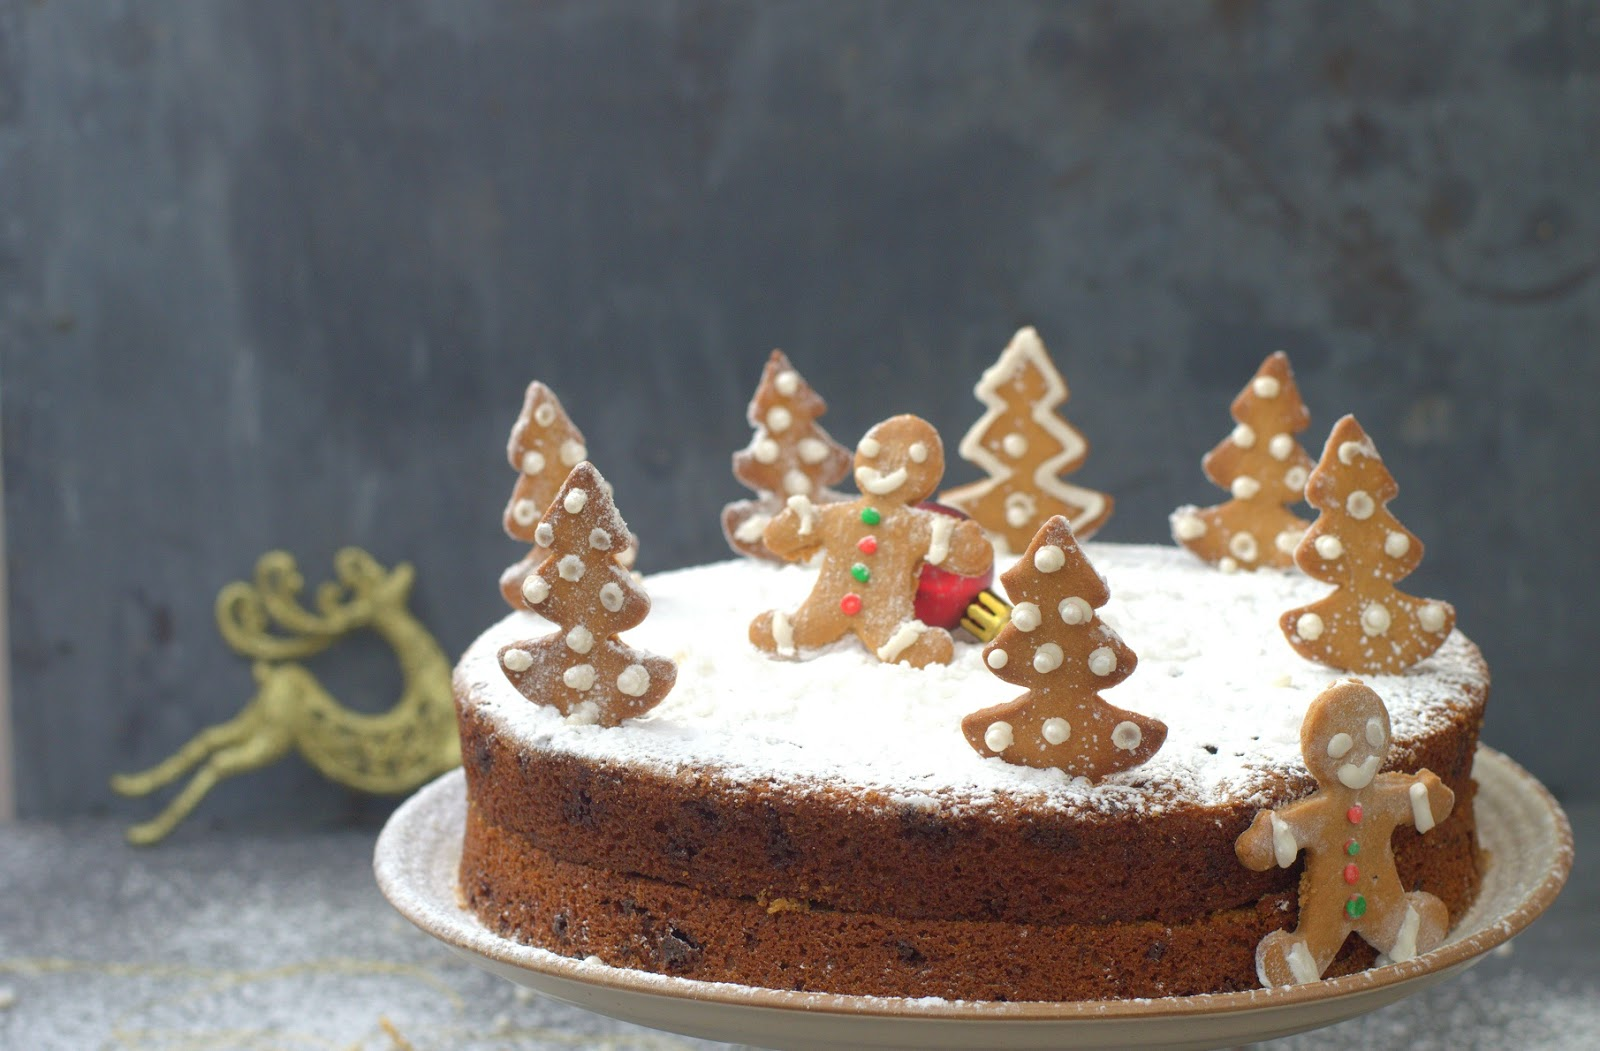 Cakes More Gingerbread With Milk Chocolate Chunks Merry Christmas